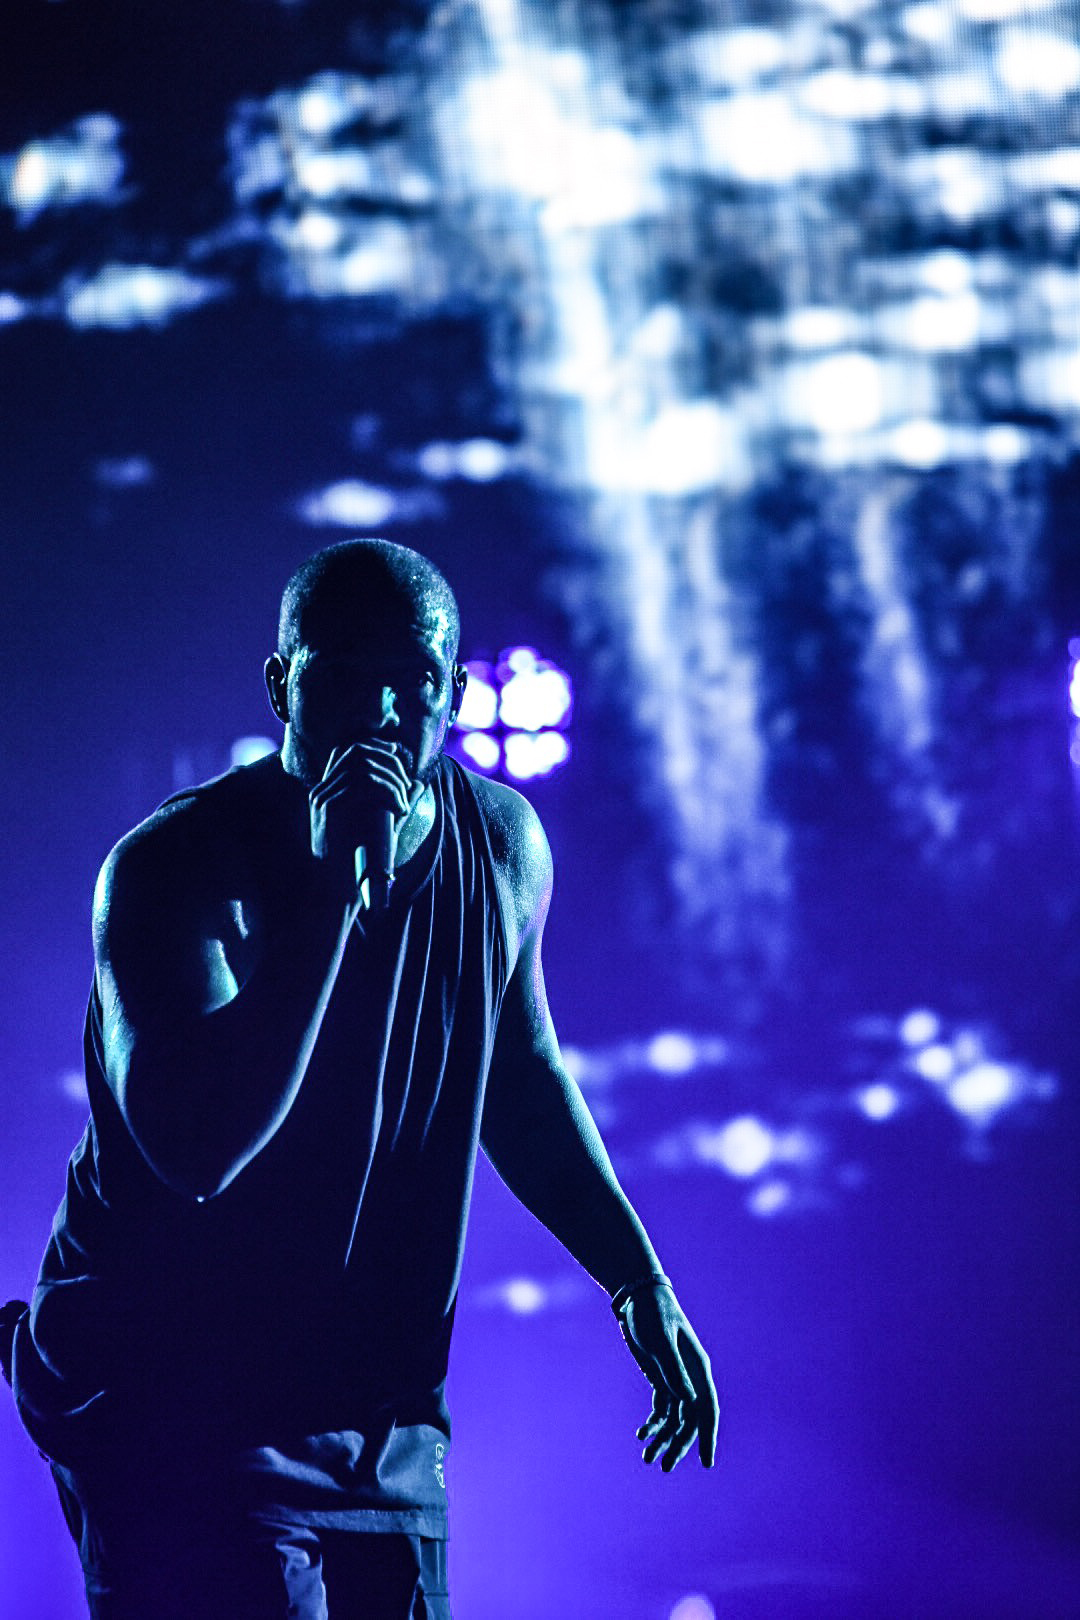 07 - Drake Performs at Glasgow's SSE Hydro as part of The Boy Meets Word Tour - 23-03-17 - Picture By - Calum Buchan Photography.jpg